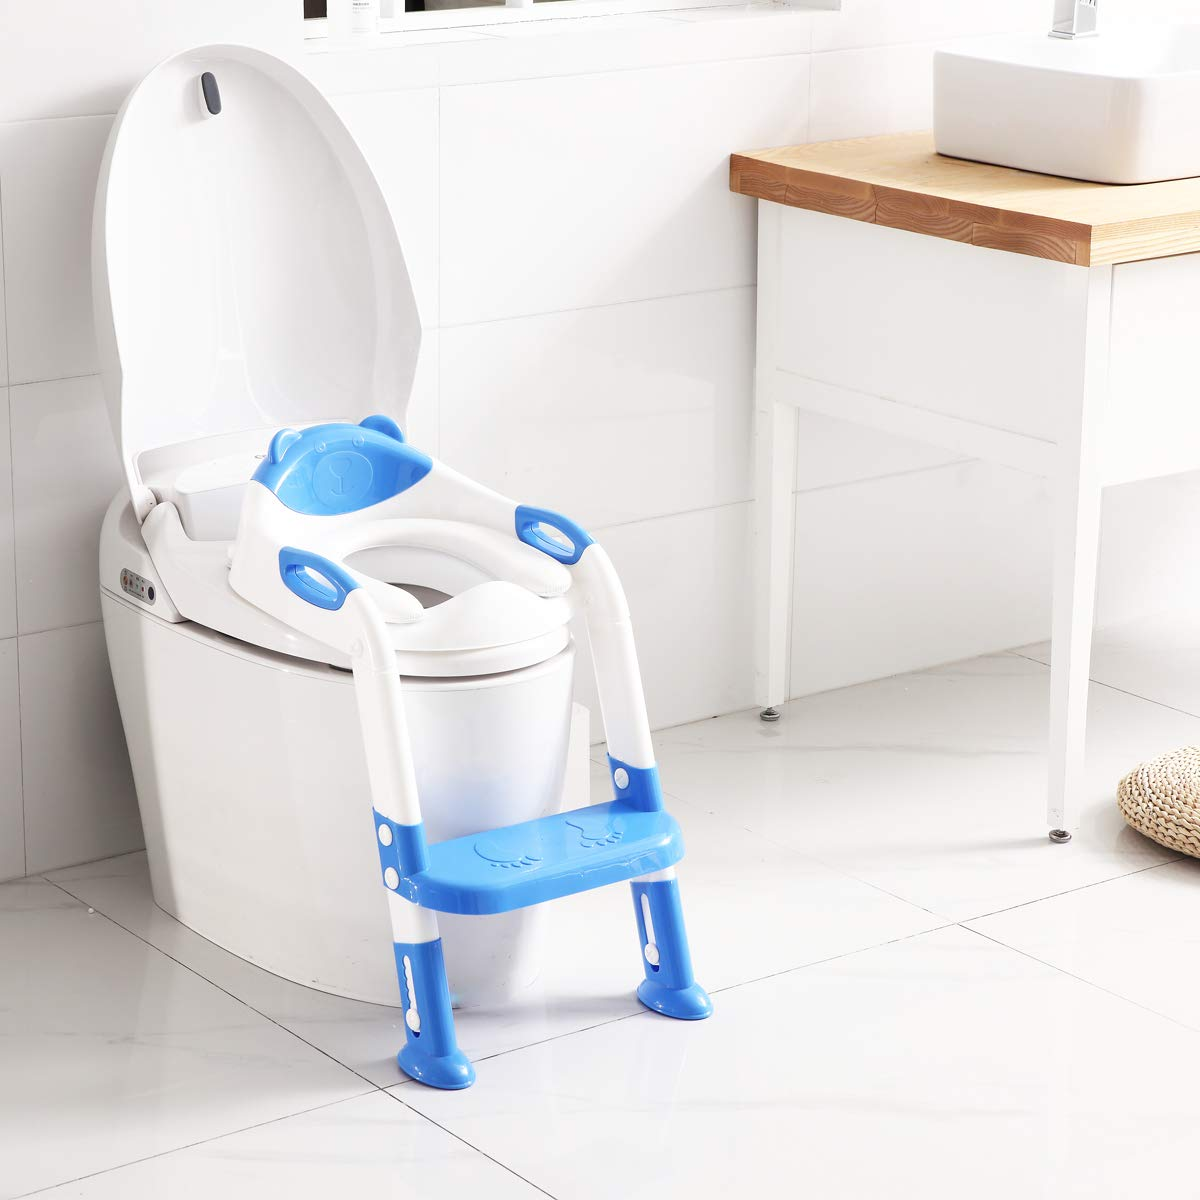 Potty Training Seat mit Step Stool Ladder,Skyroku Potty Training Toilet für Kids Boys Girls Toddlers-Comfortable Safe Potty Seat mit Anti-Slip Pads Ladder (Navy Blue)